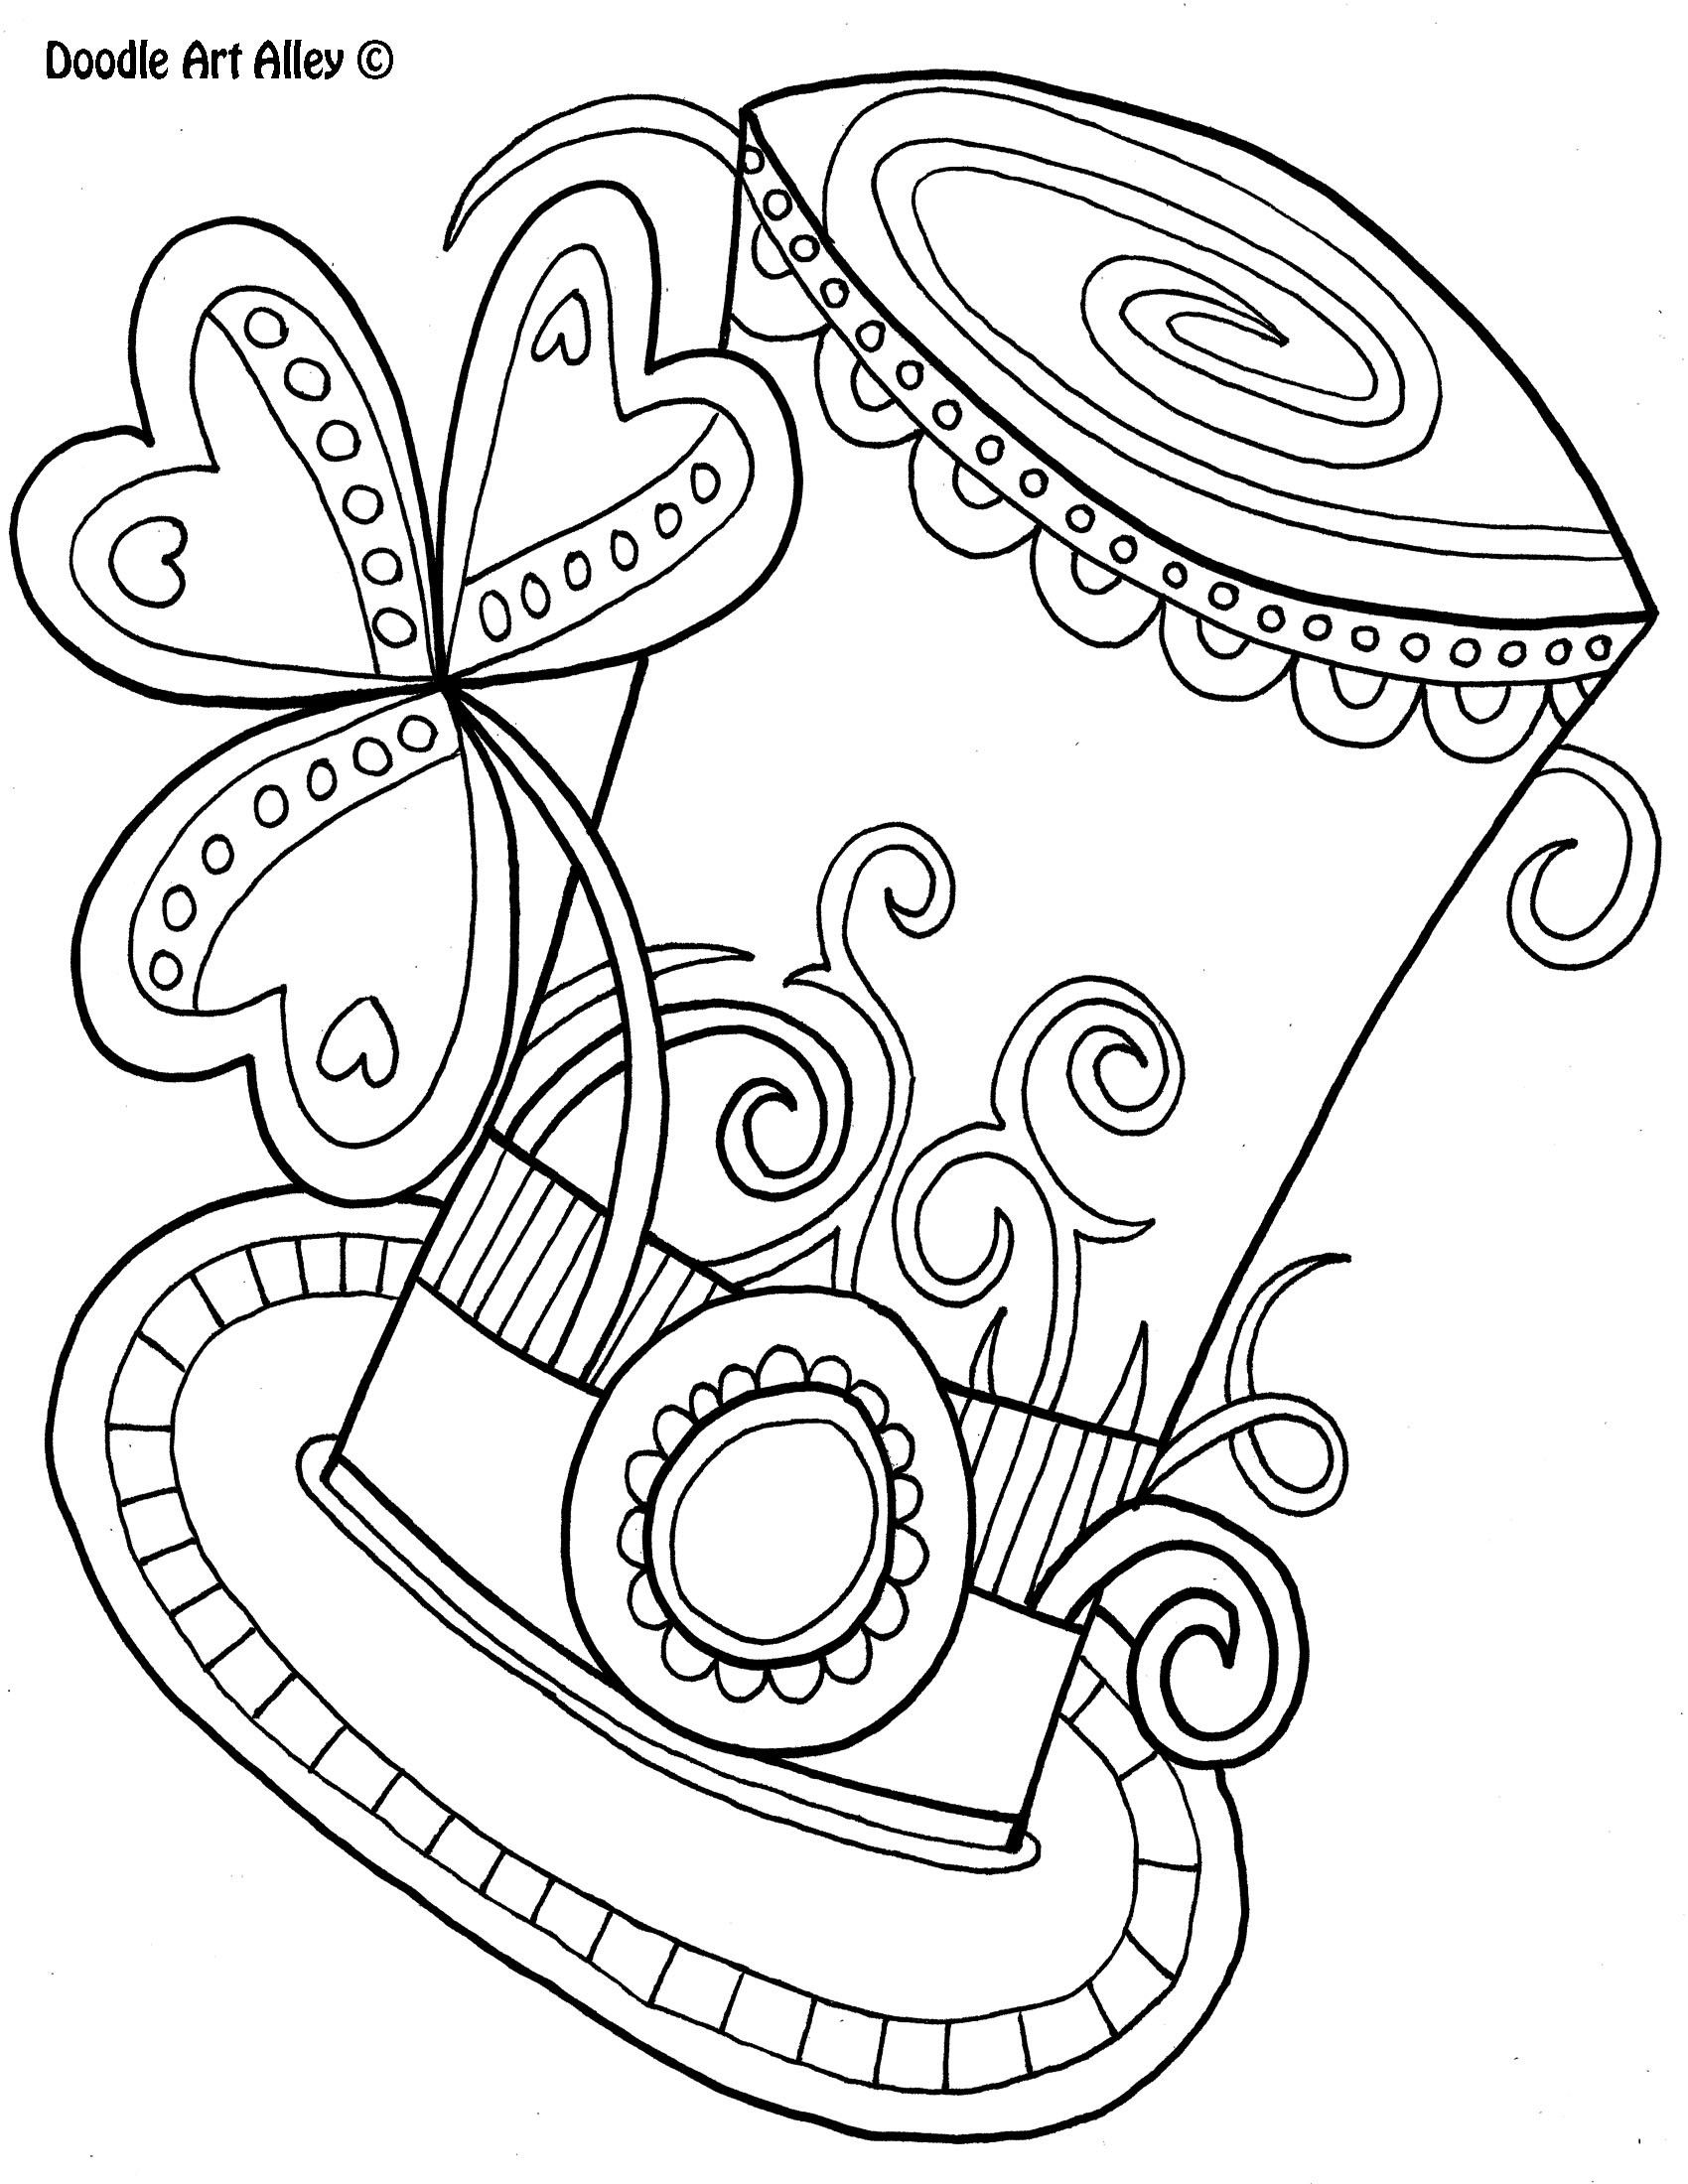 Pin By Alice Johnson On Coloring Pages To Print | Coloring